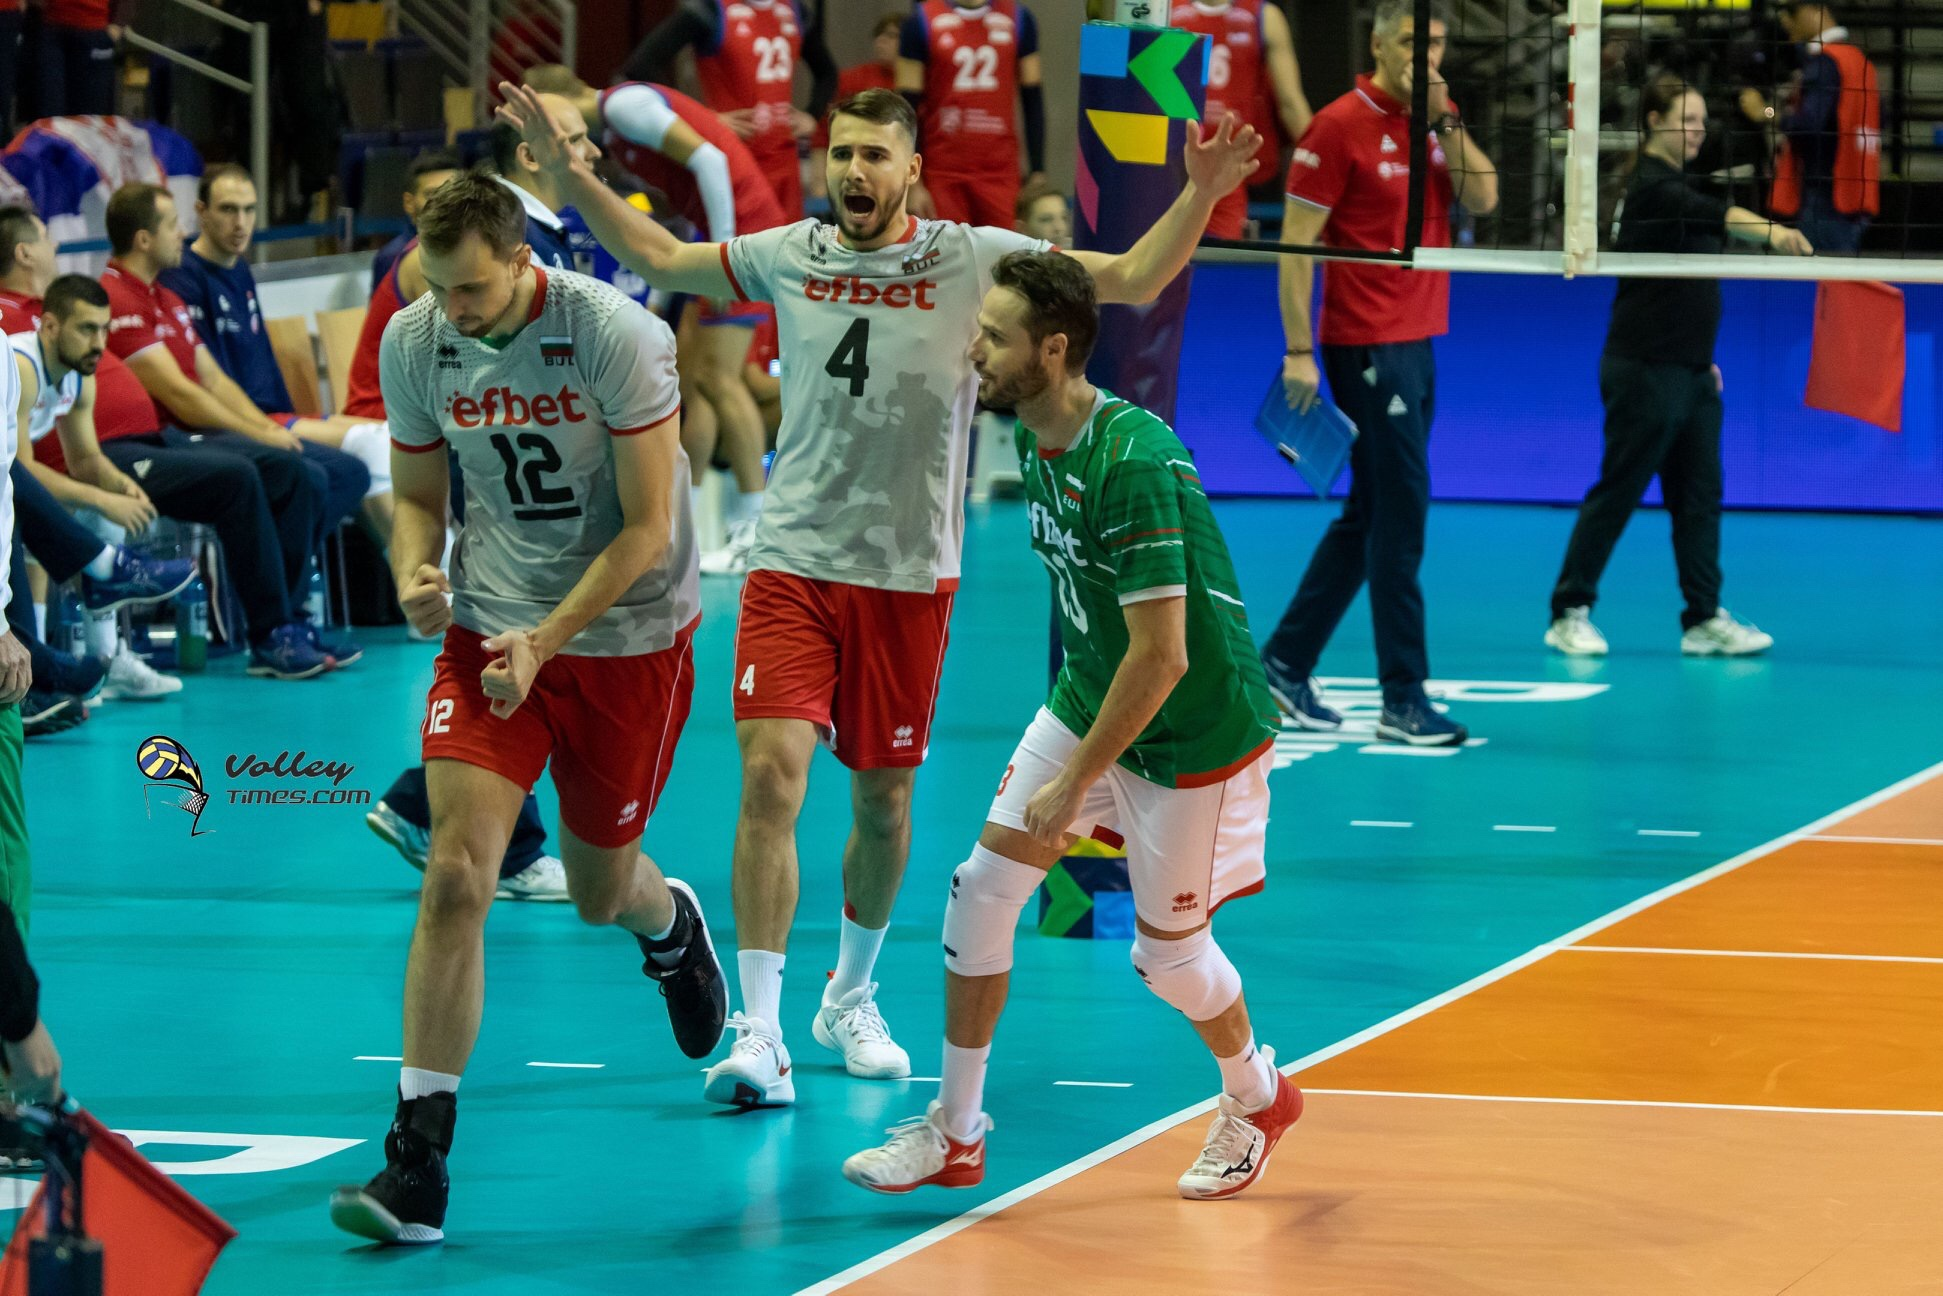 Bulgaria: Yosifov and Salparov say goodbye to national team. Prandi leaves post as head coach.